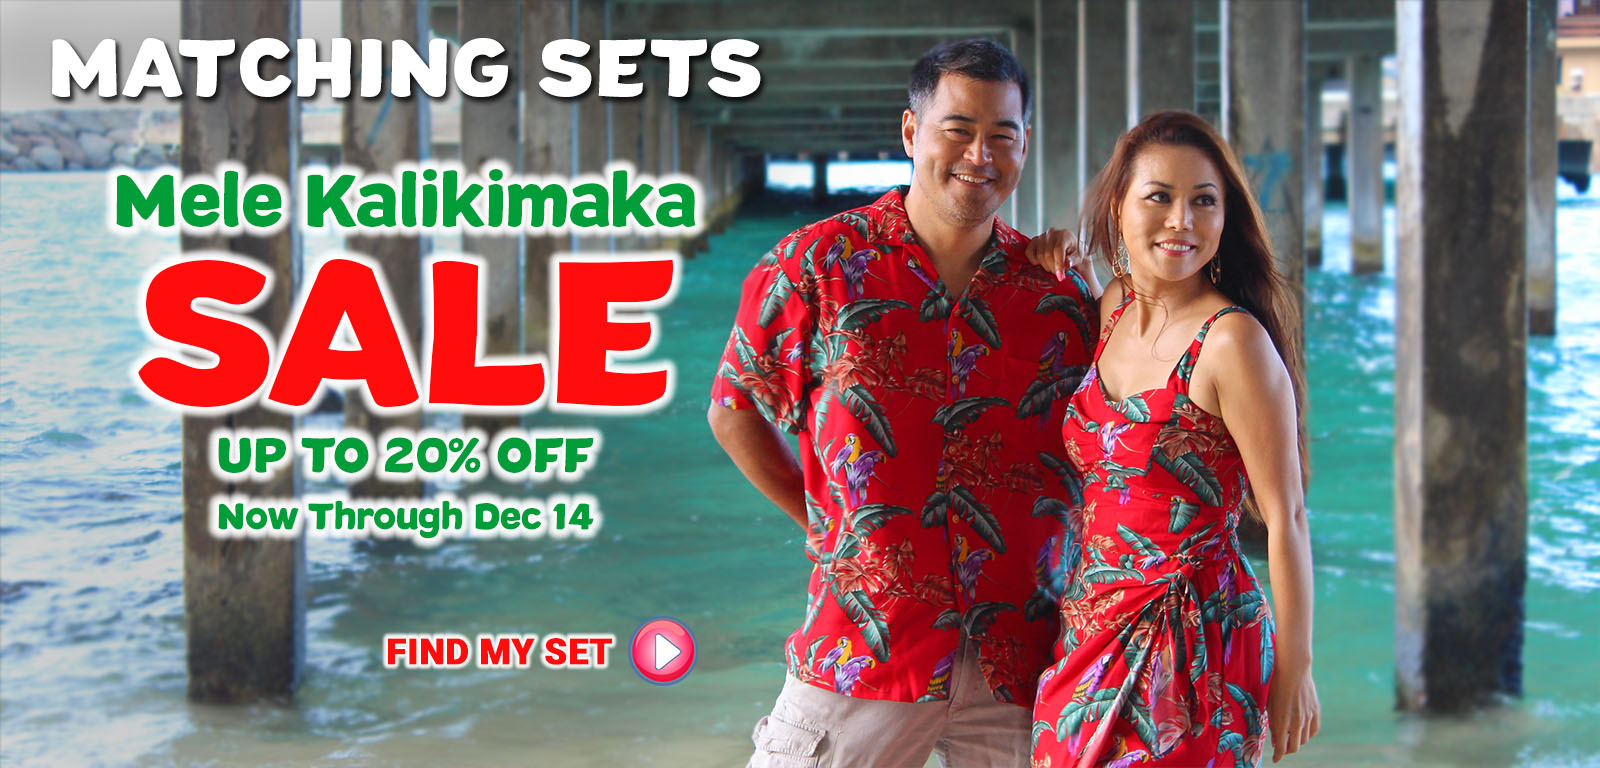 Matching Shirts and Dresses Mele Kalikimaka Sale